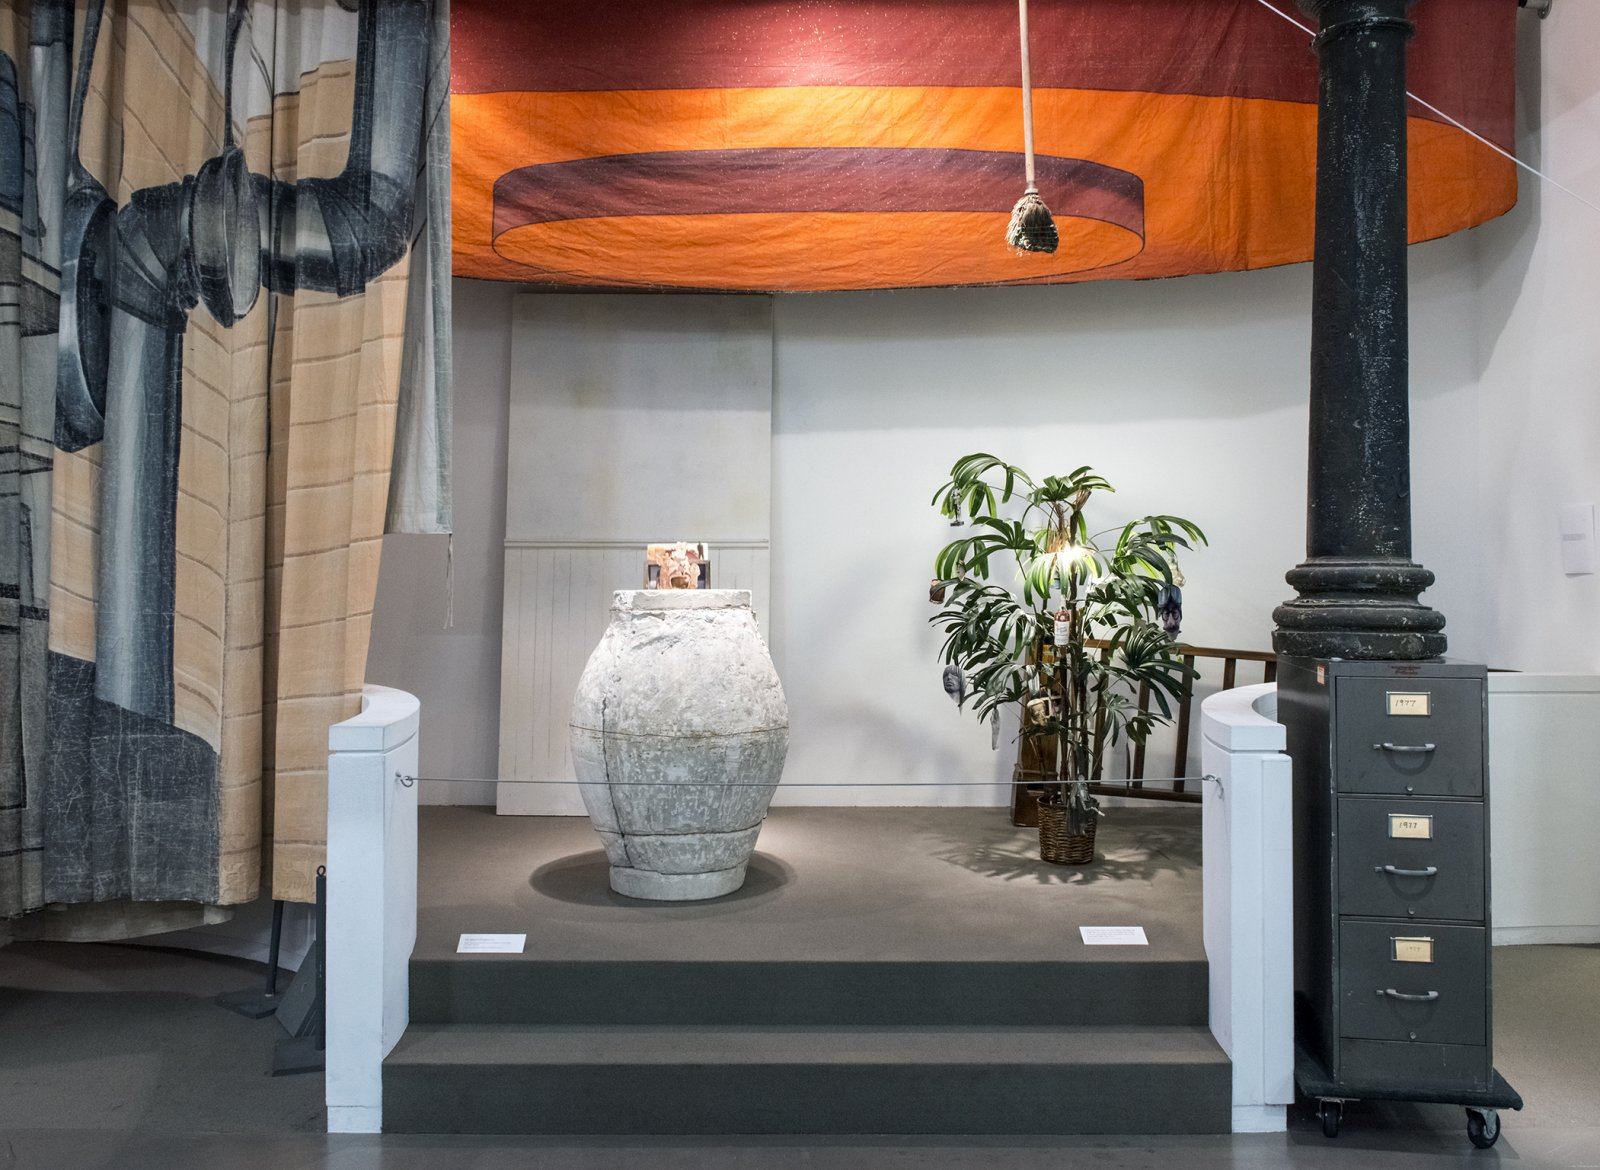 Farmer Storeroom Overture 2015 How Do I Fit This Ghost In My Mouth Vag 2015 Install 10 by Geoffrey Farmer